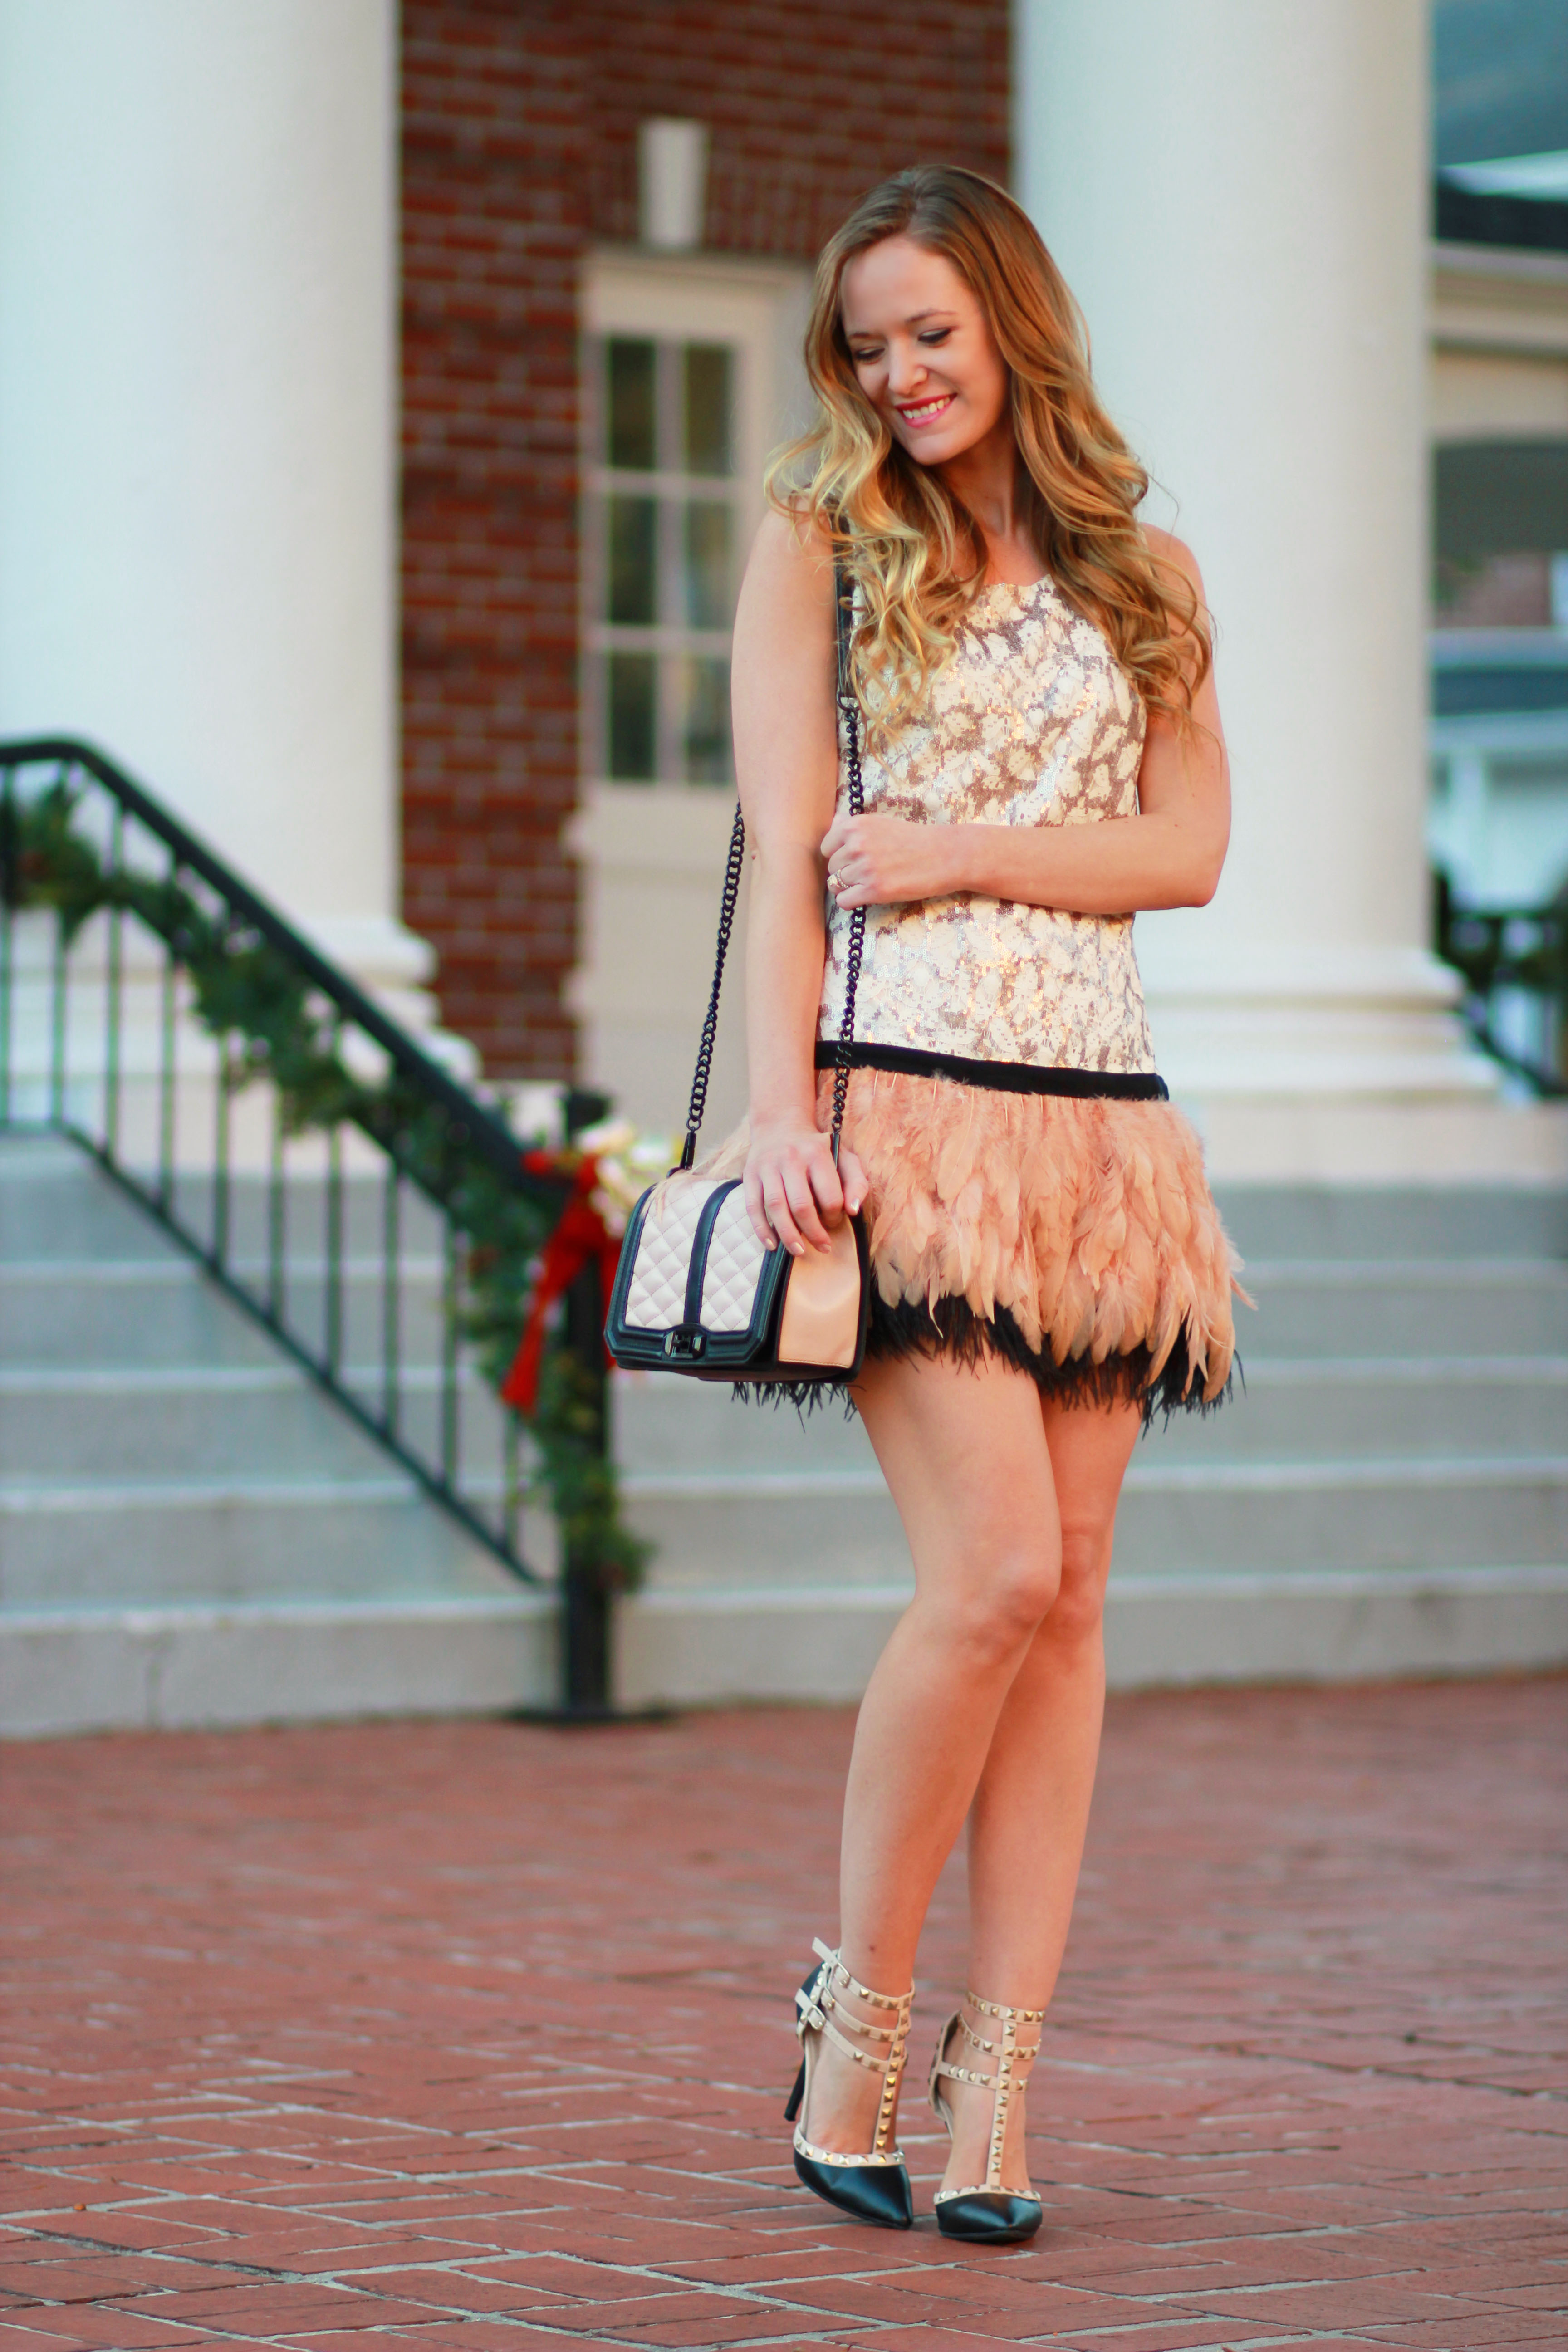 orlando, florida fashion blogger styles new years eve white plum dress with sequin and feather details and rebecca minkhoff crossbody